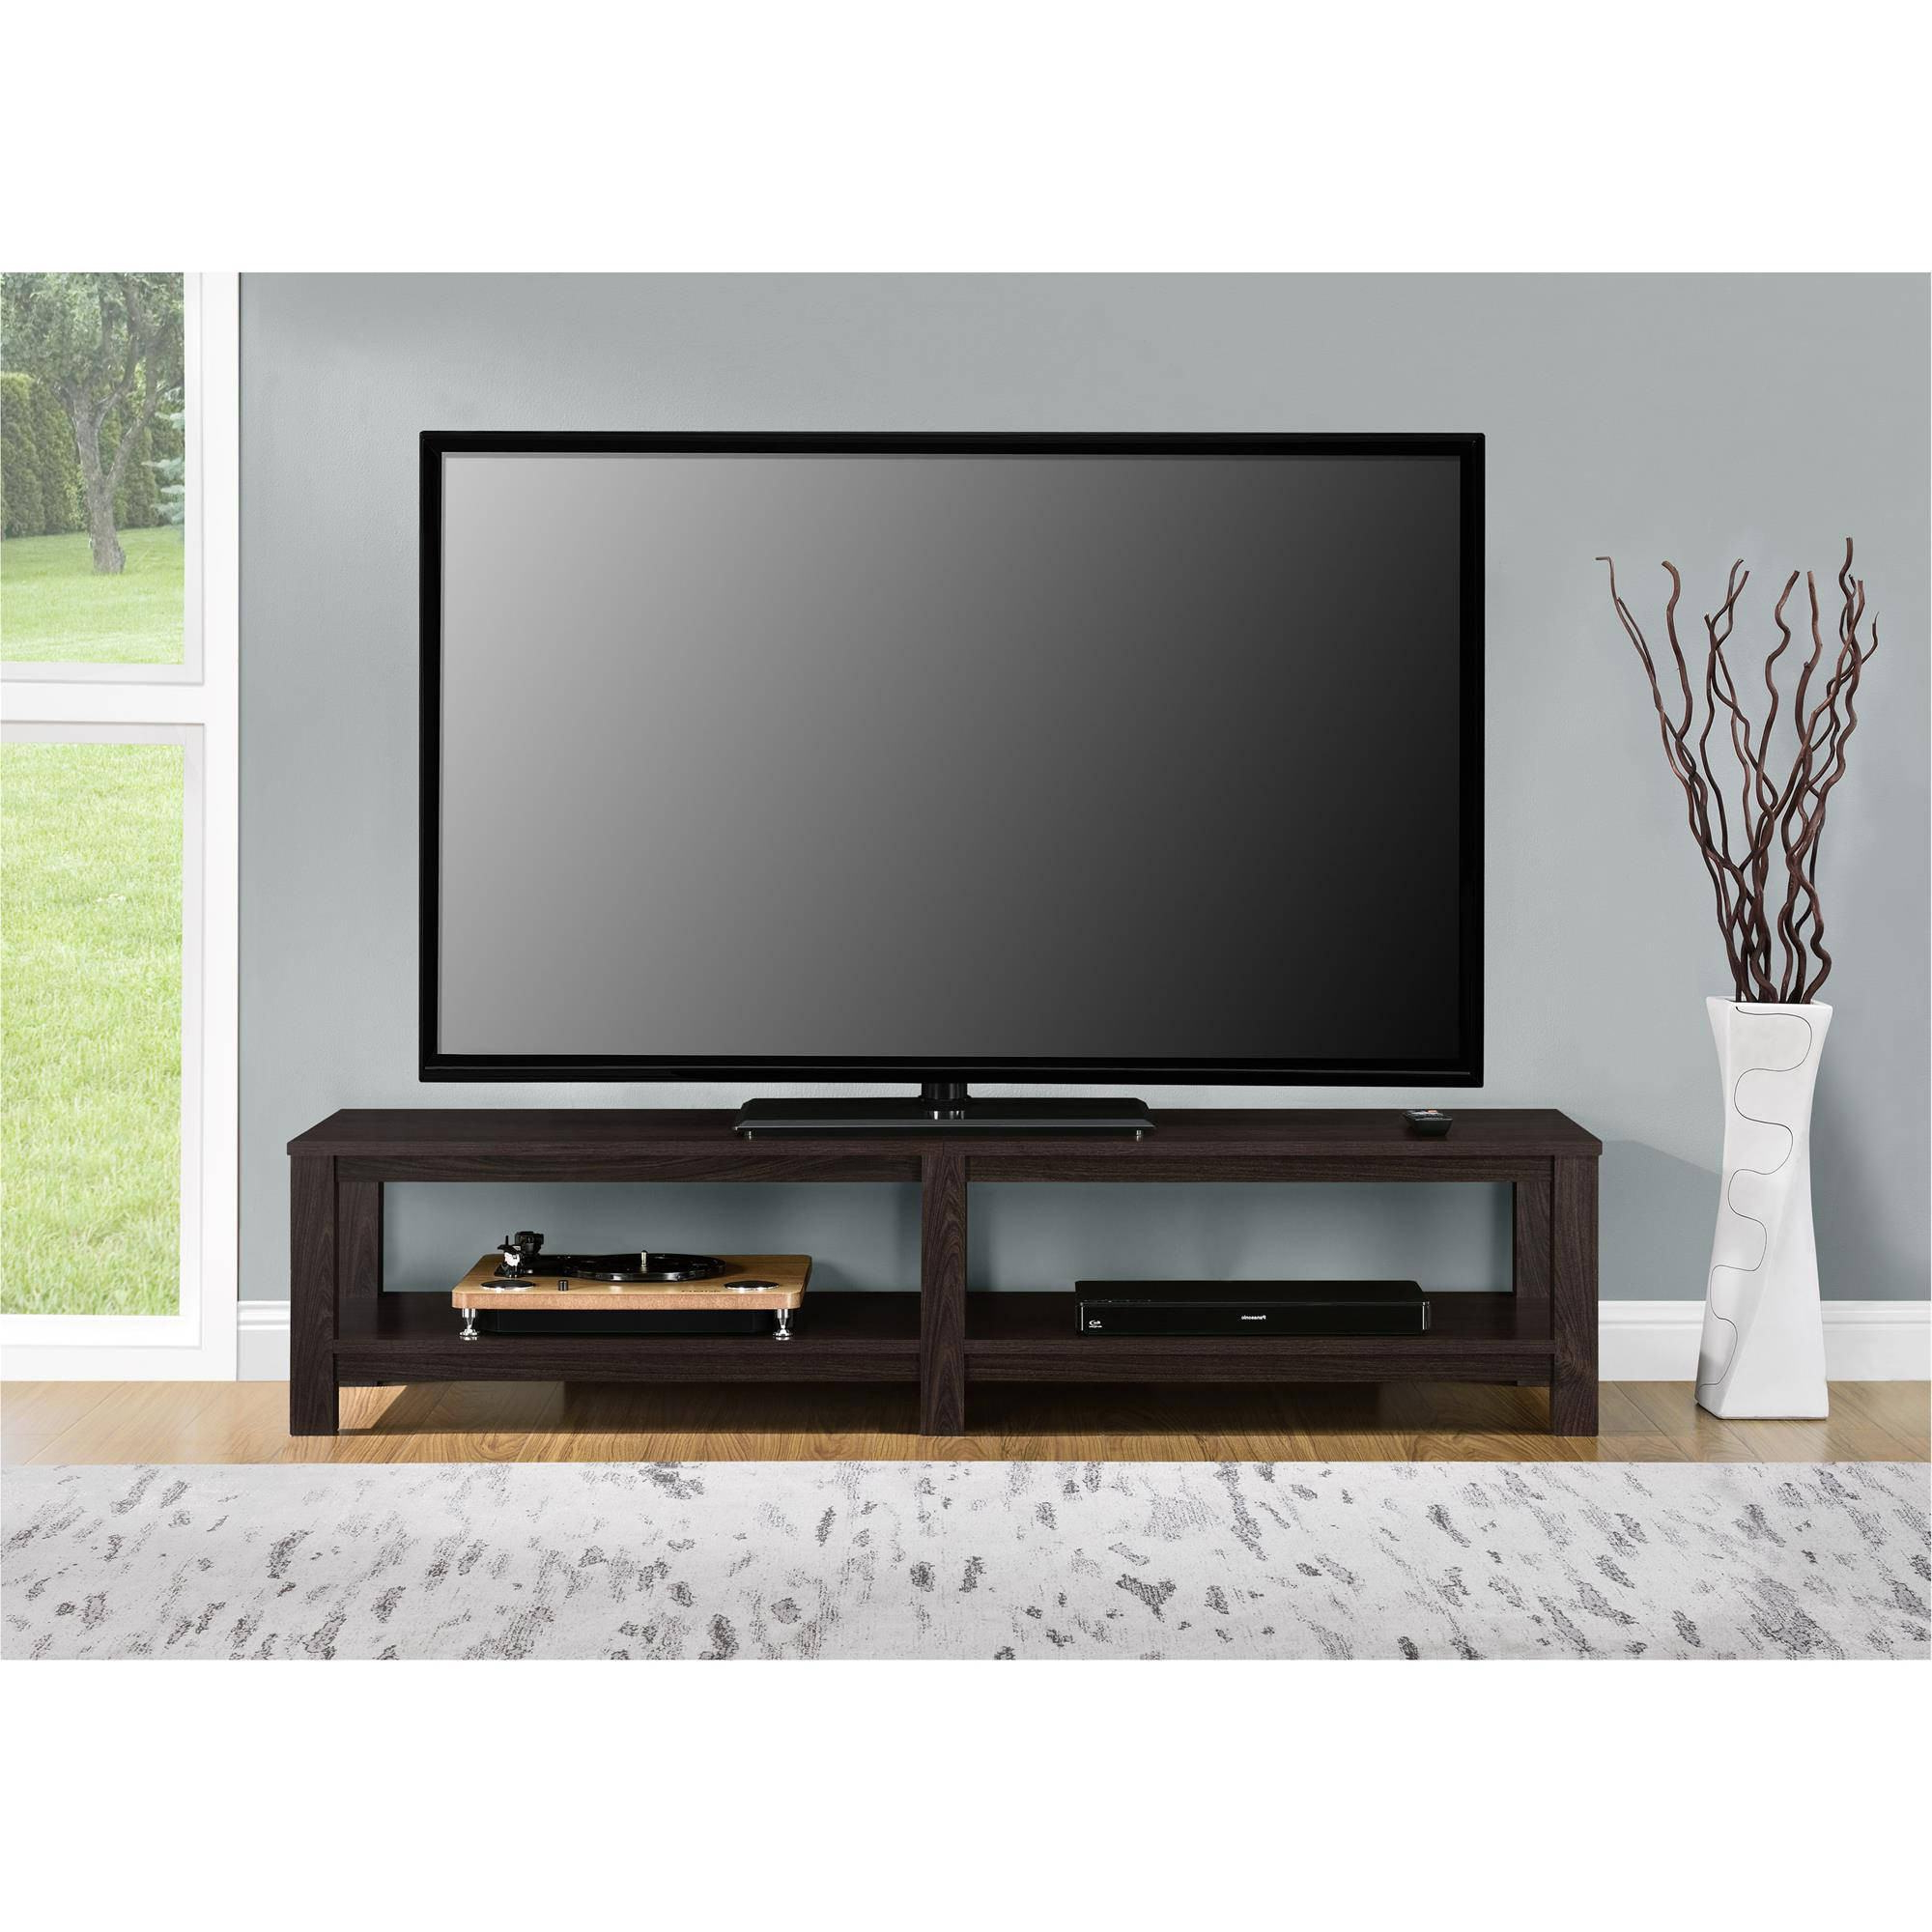 13 Stunning 65 Inch Tv Stand For Your New Living Room In Jaxon 65 Inch Tv Stands (View 2 of 20)